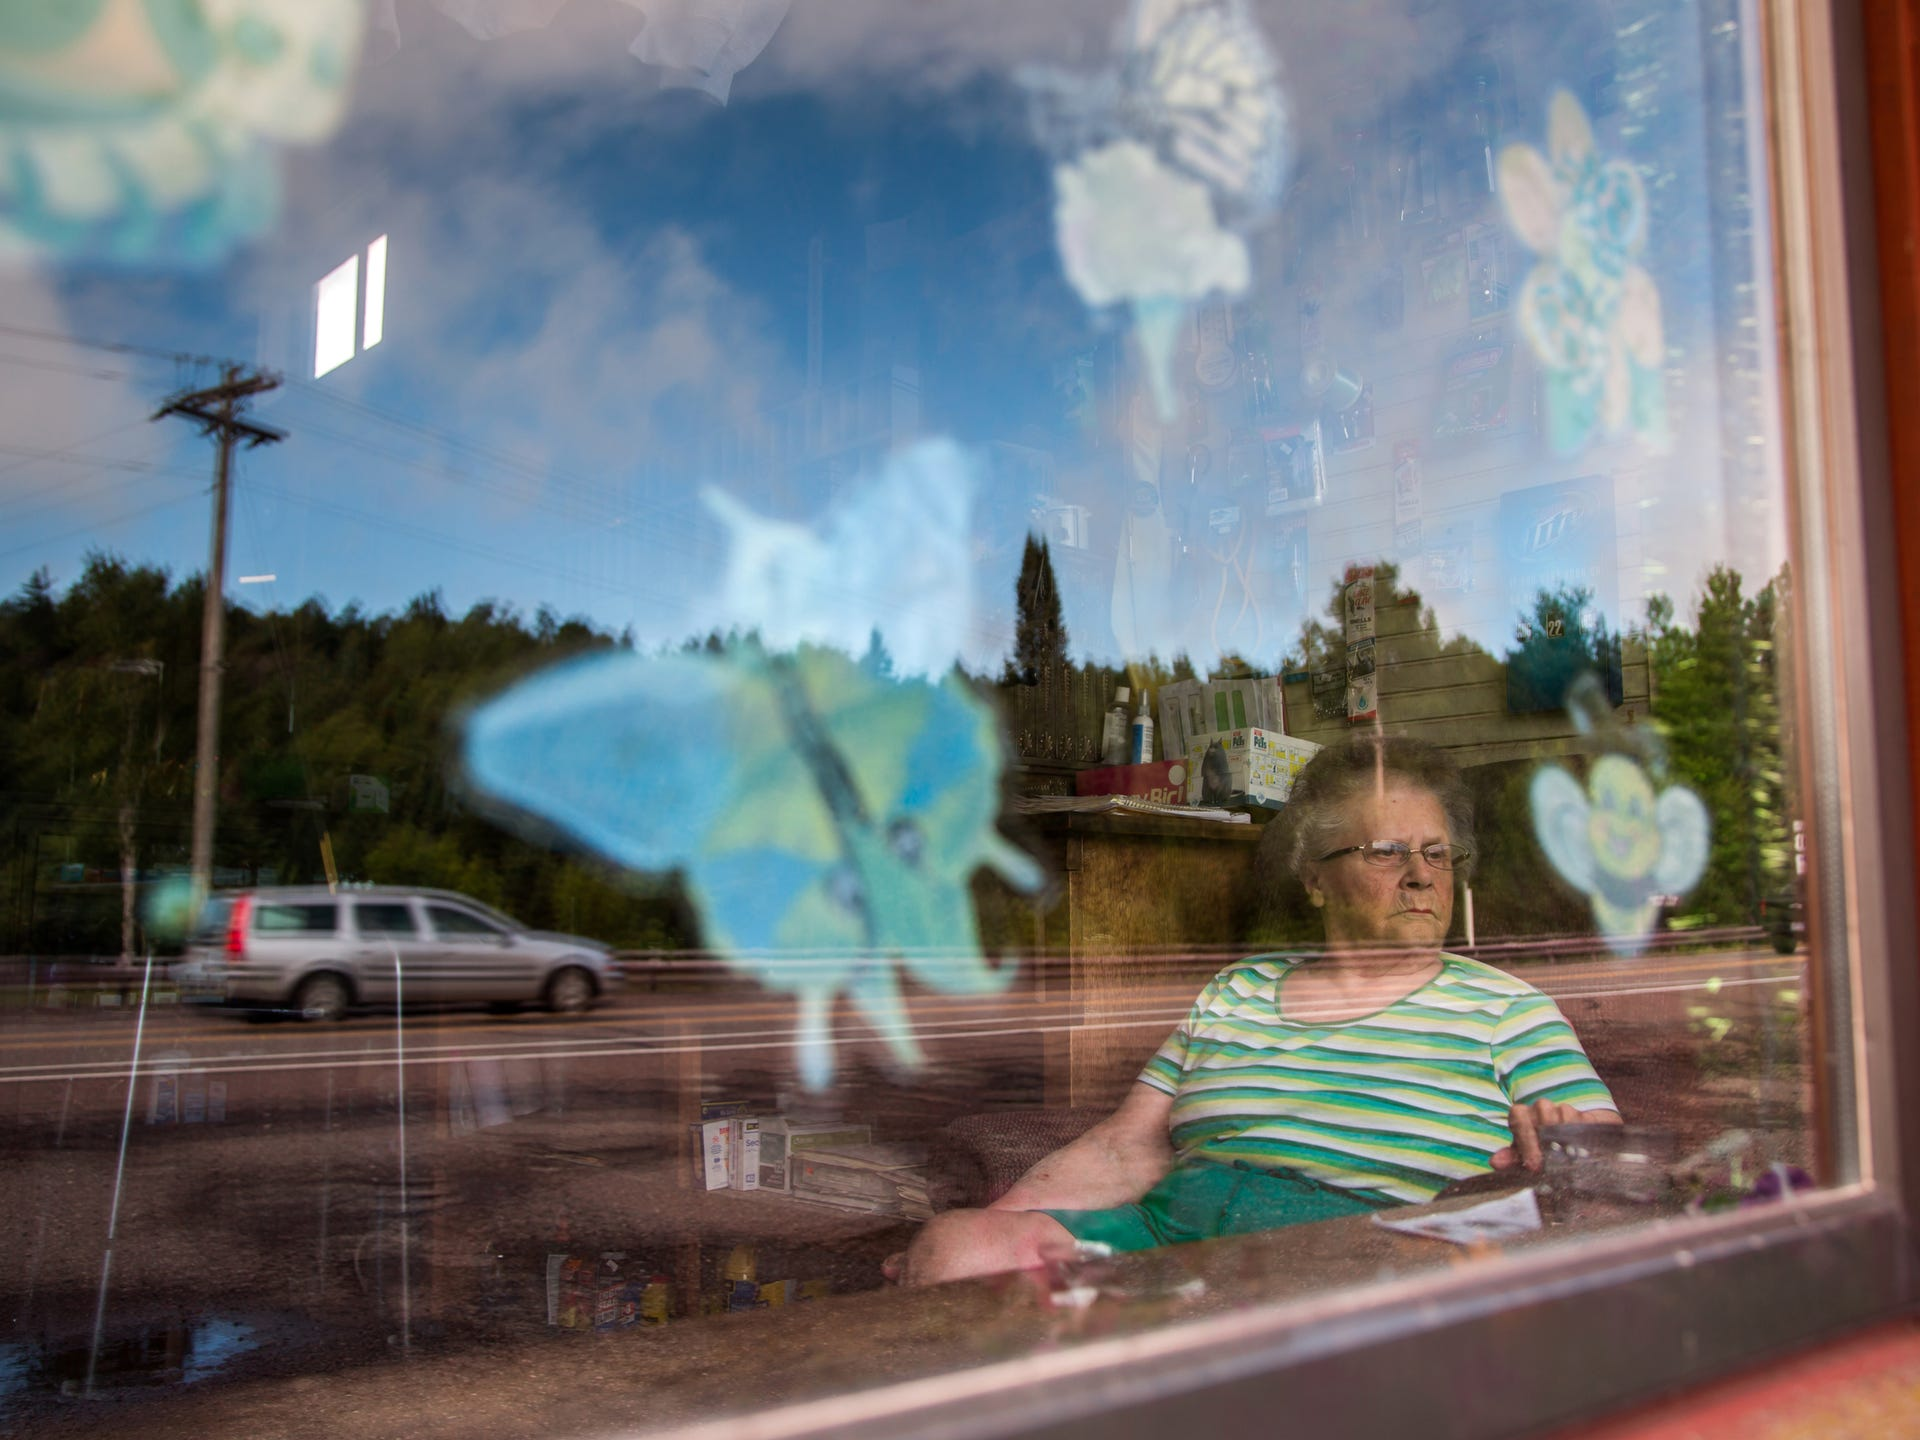 Arbutus Peterson, 84, of Phoenix watches traffic passing